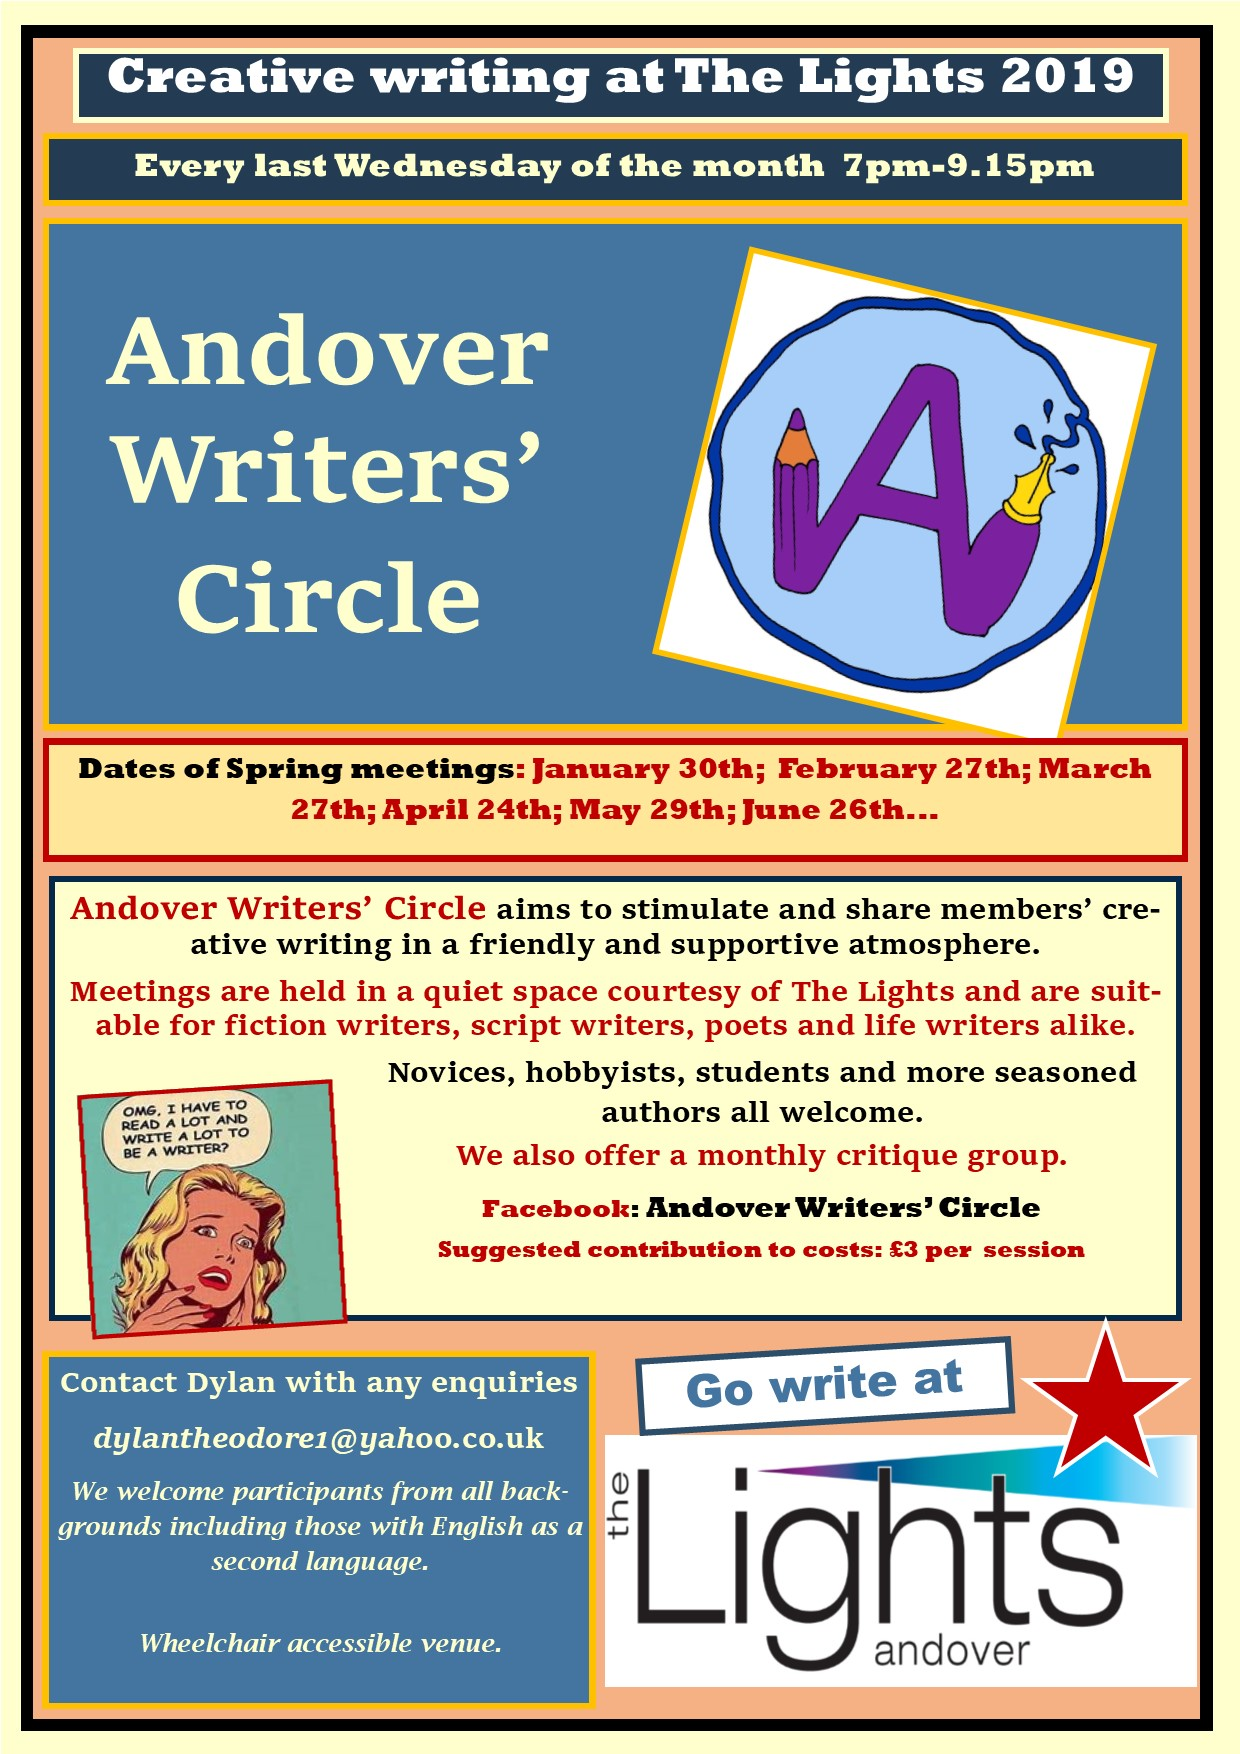 Andover Writers' Circle